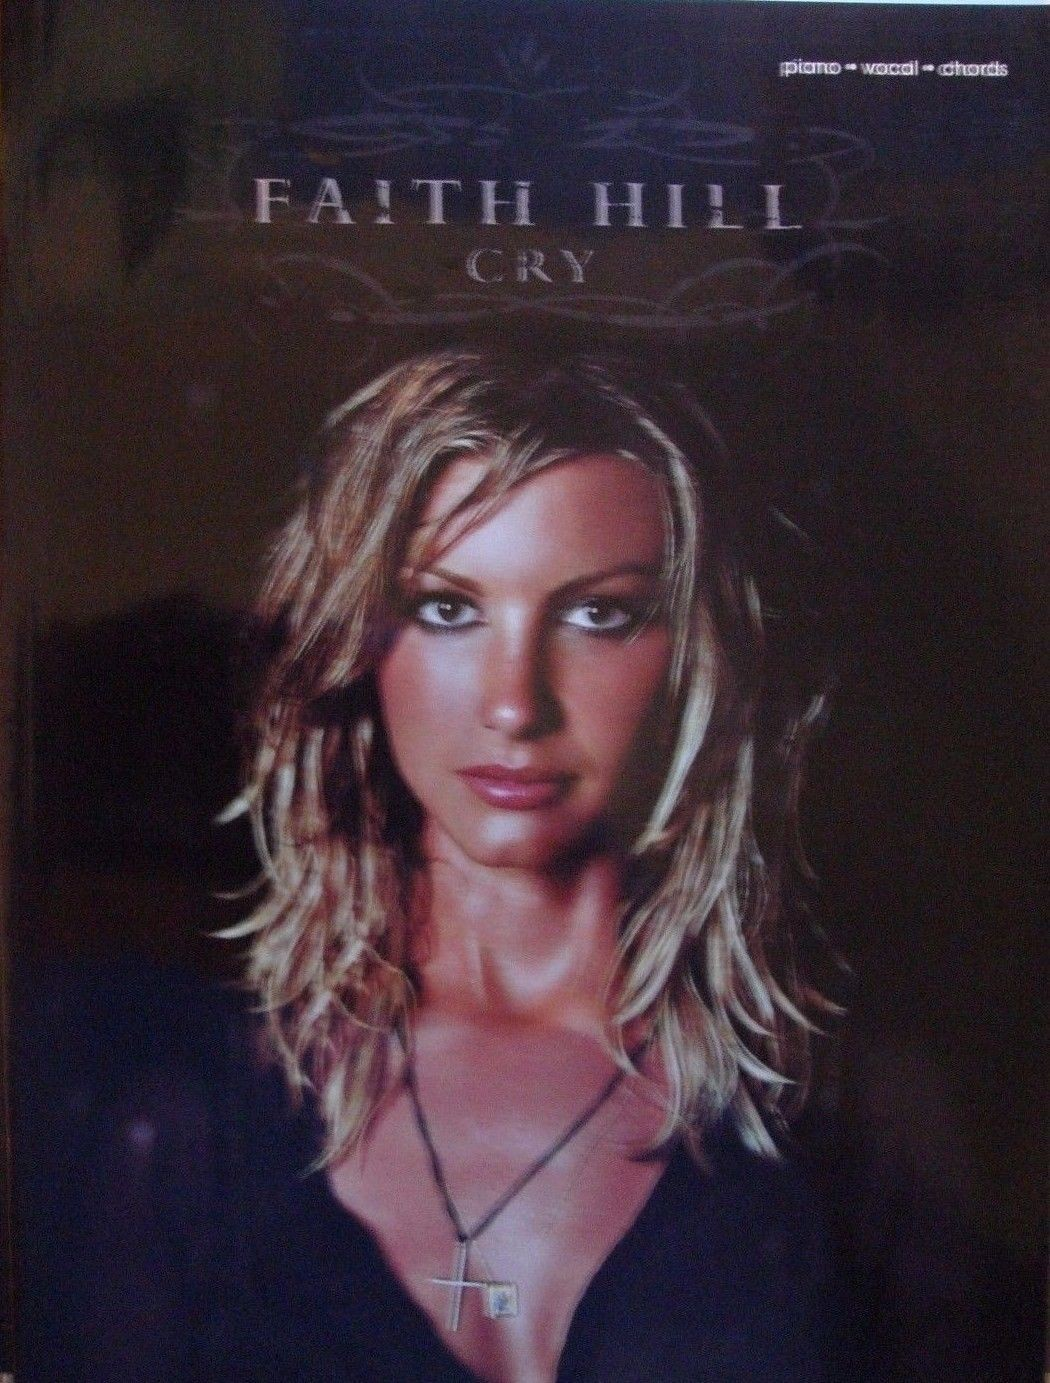 Cry by Faith Hill Piano Vocal Guitar Sheet Music Songbook Pop Country R&B S161